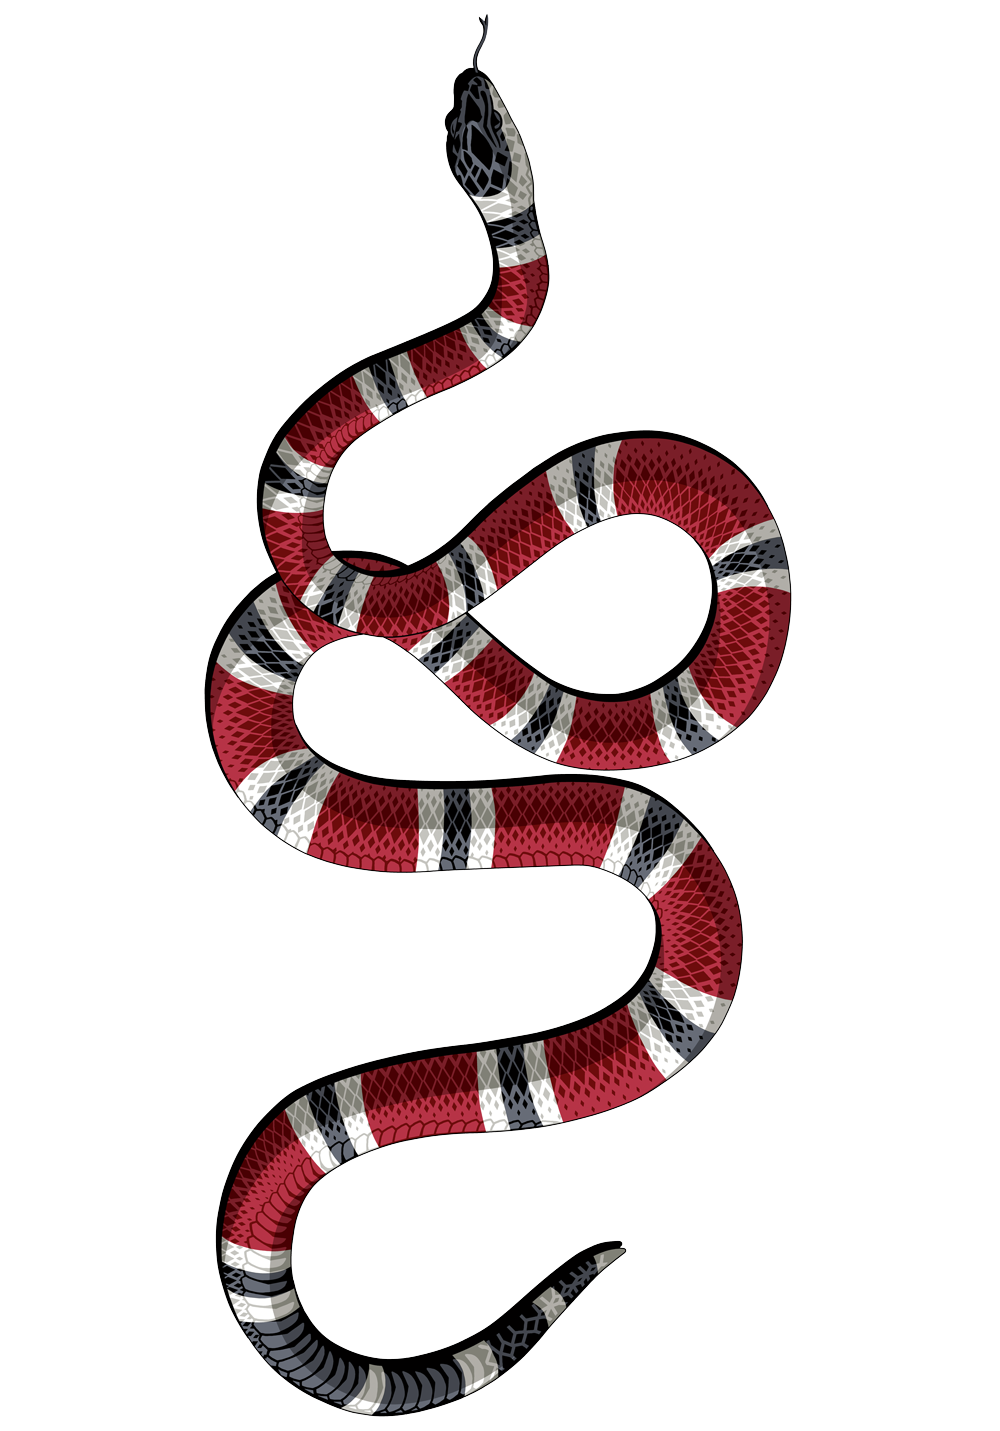 Snake art png. Image result for gucci